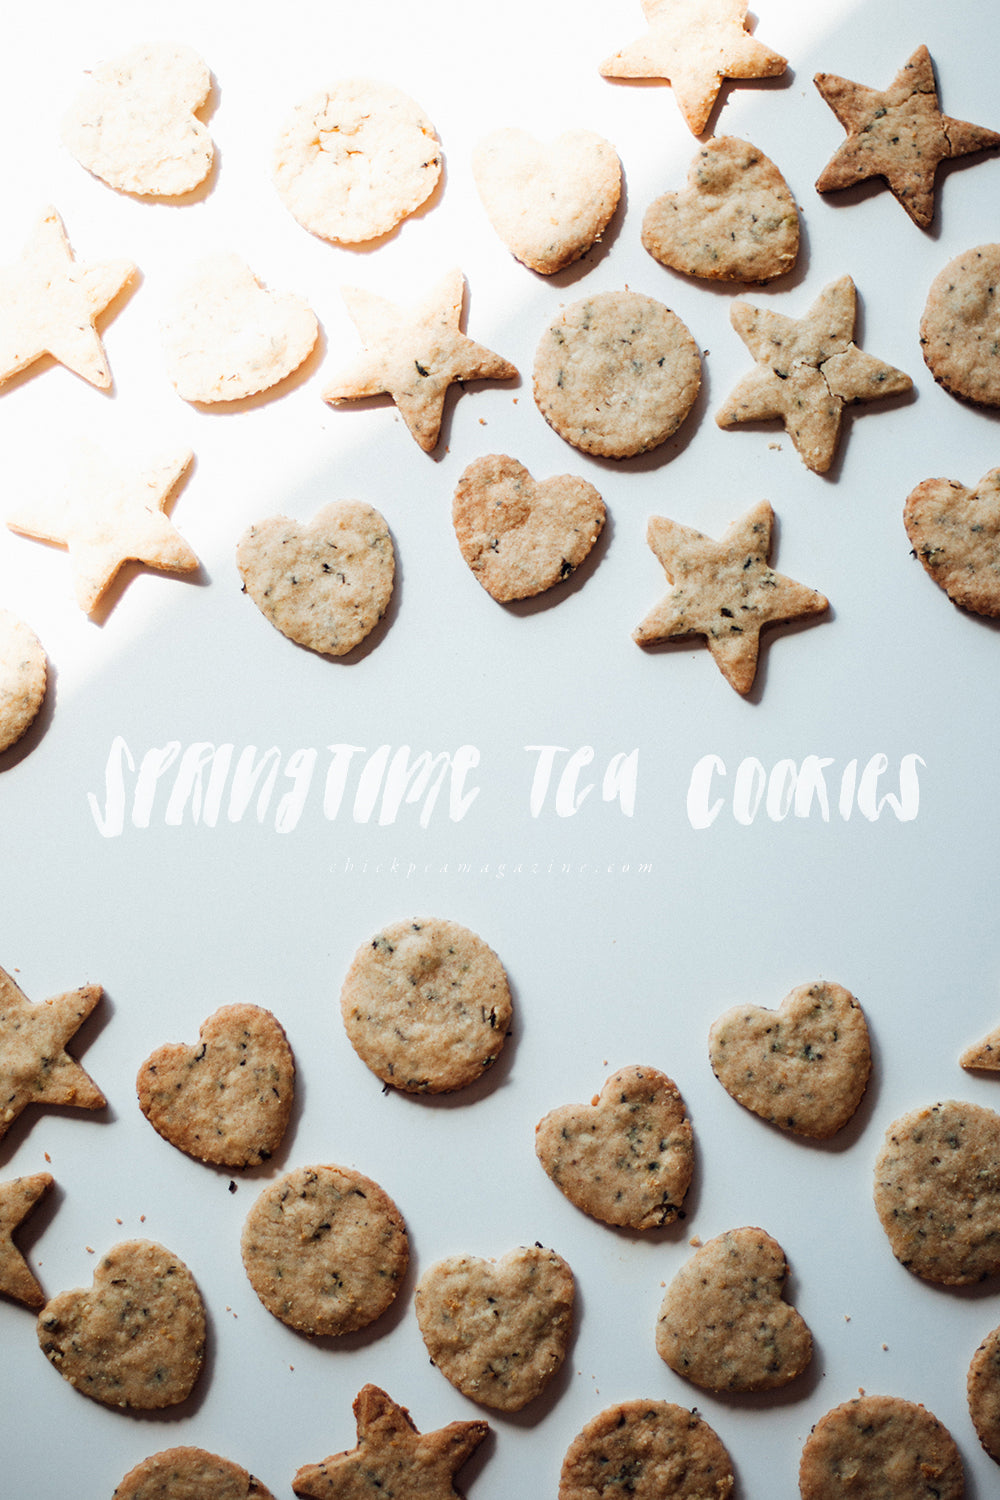 easy vegan tea cookies